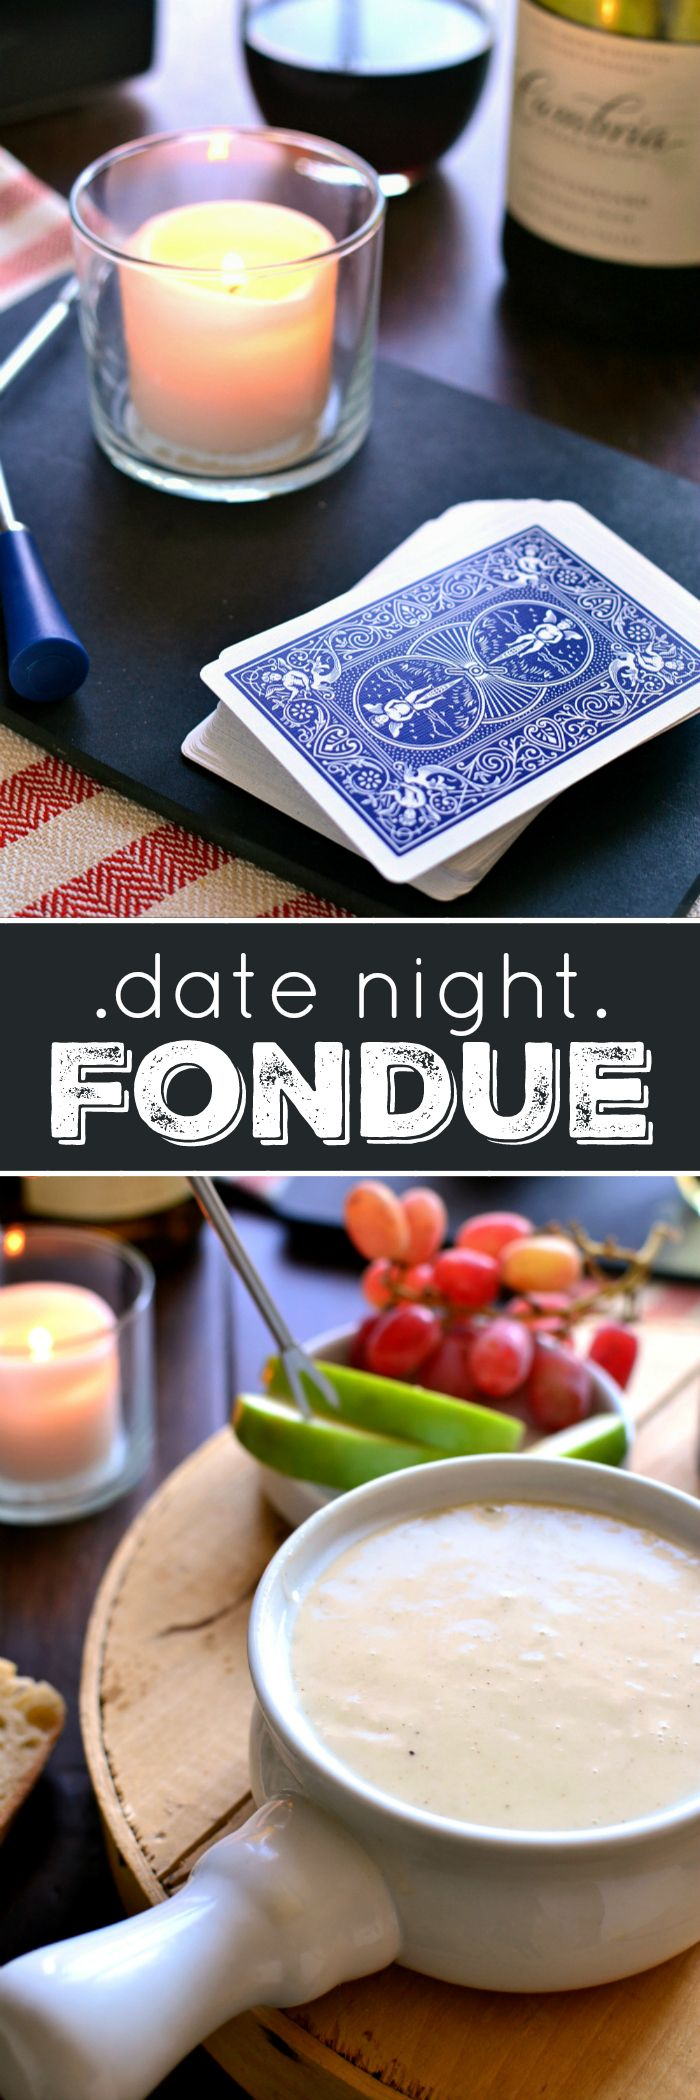 5 simple tips for planning the perfect Fondue Date Night - at home!